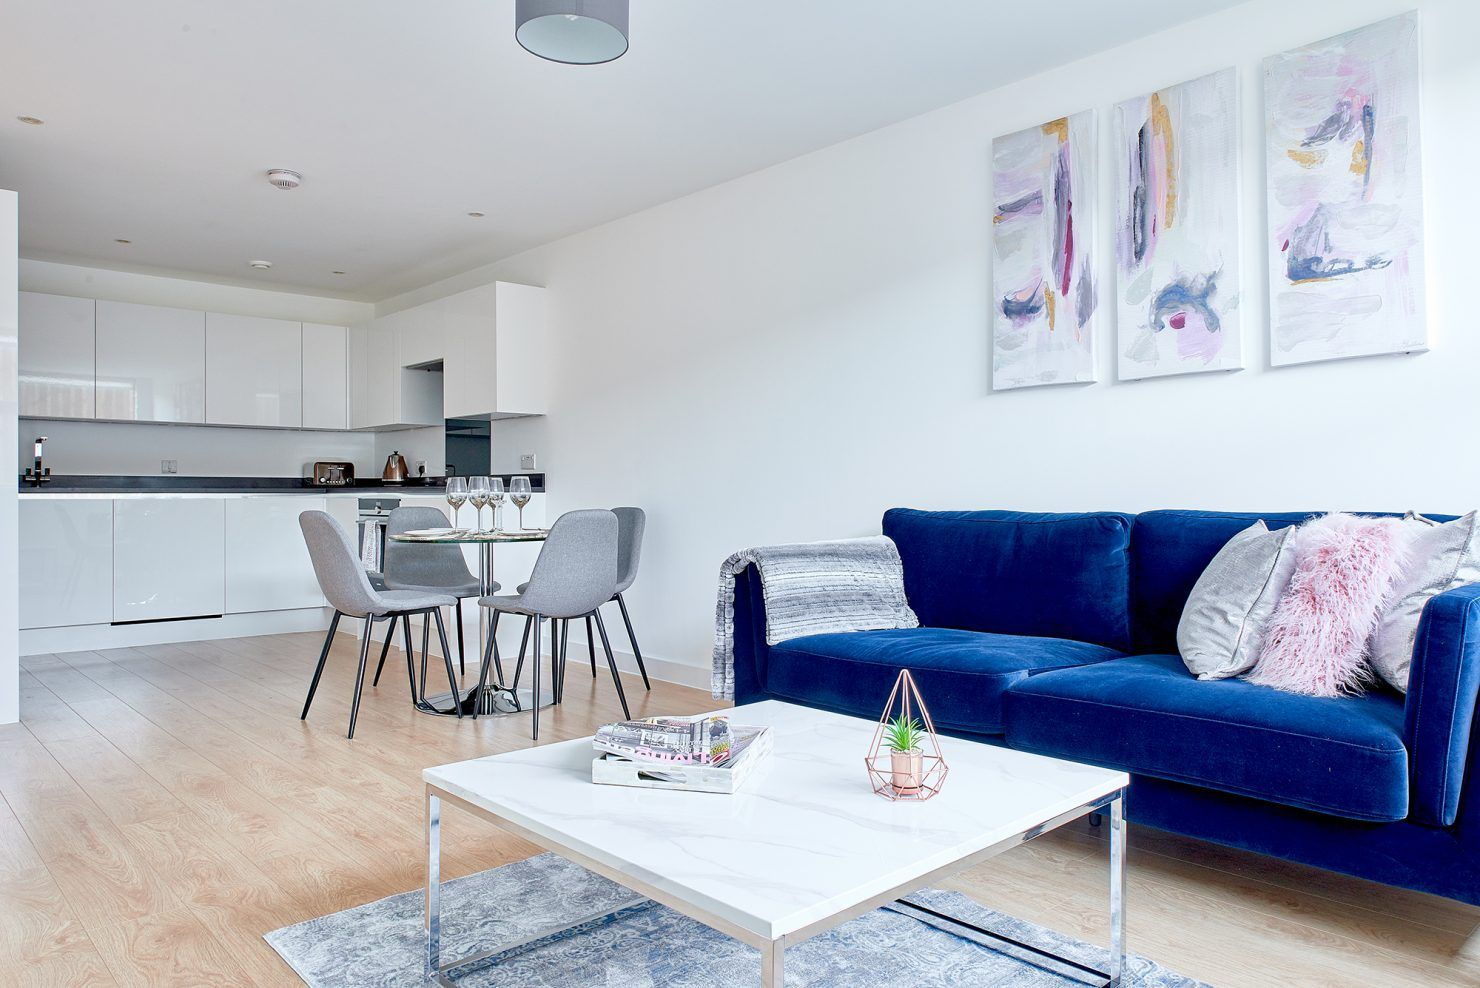 The common area at Vida House, a Build To Rent development in South East London.